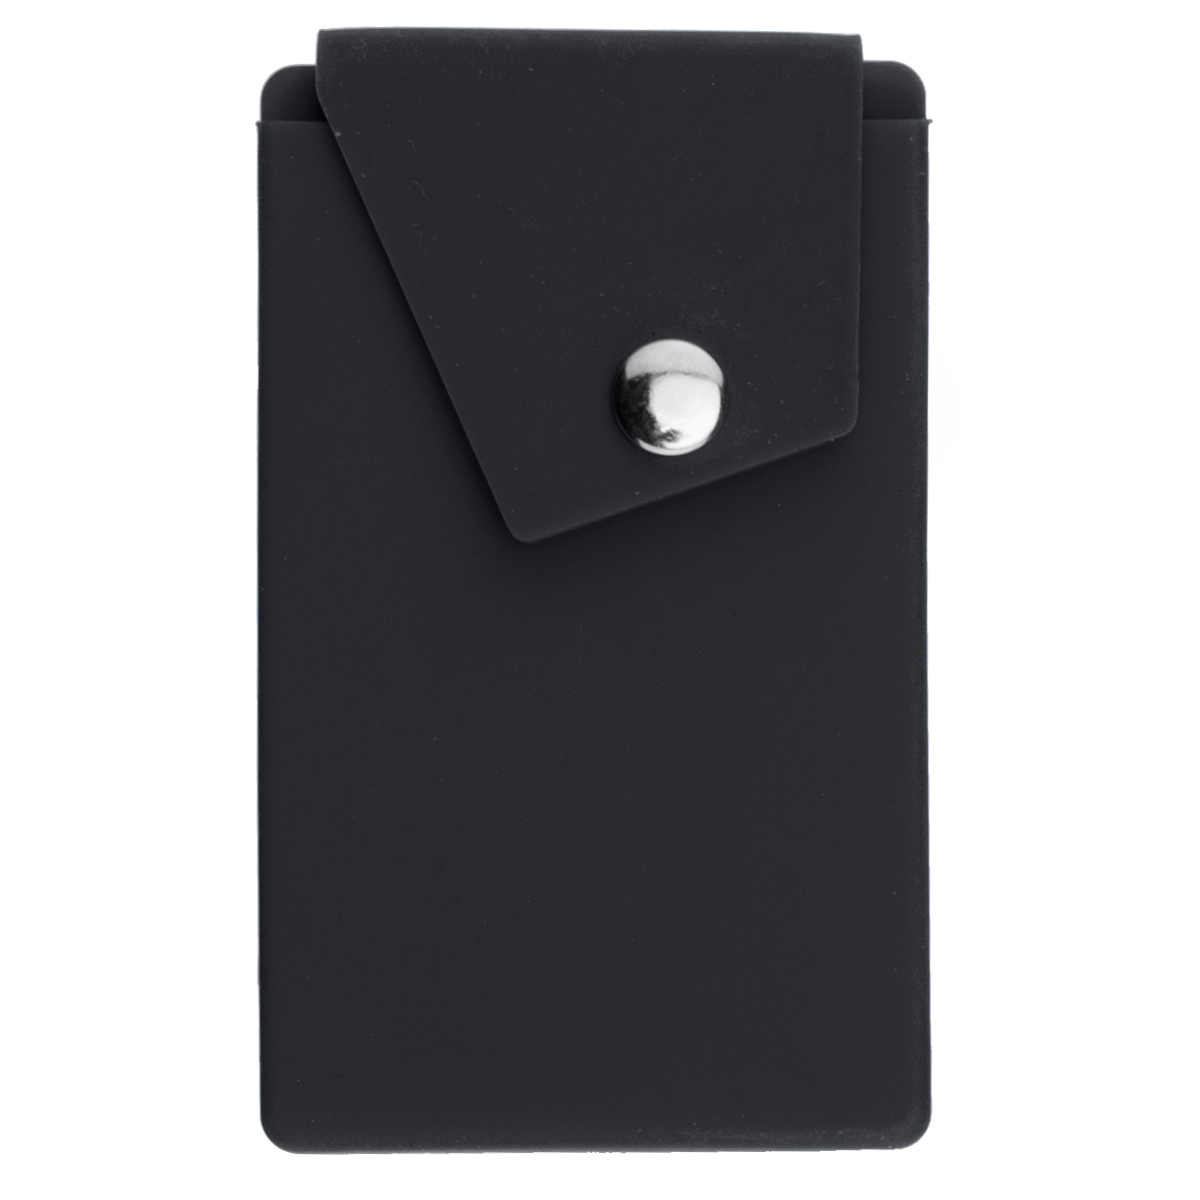 Black Silicone Phone Pocket With Stand